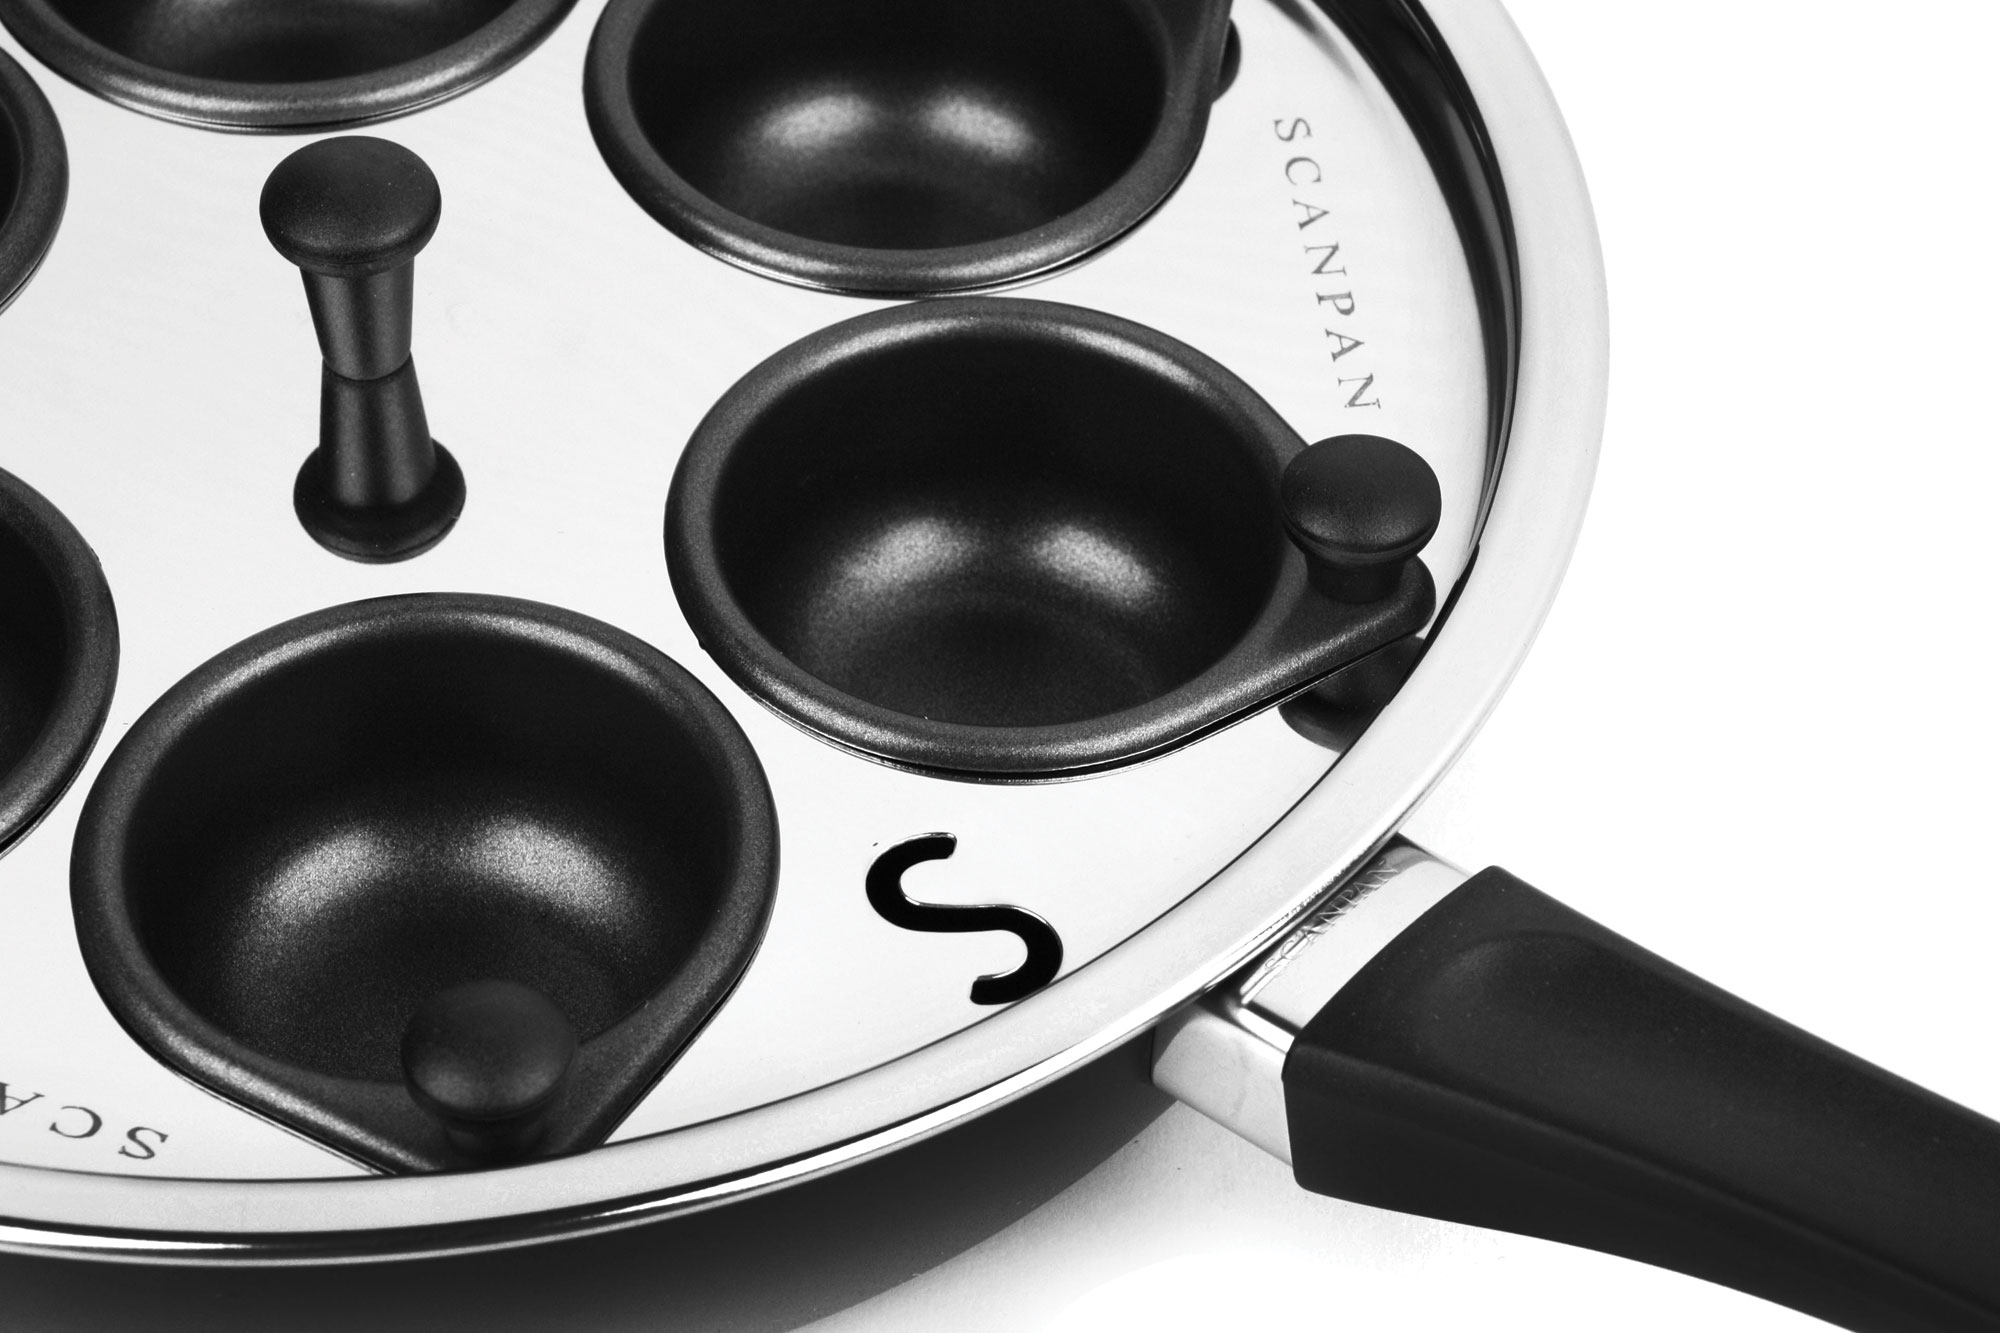 Scanpan Egg Poacher Insert 10 25 Inch Cutlery And More